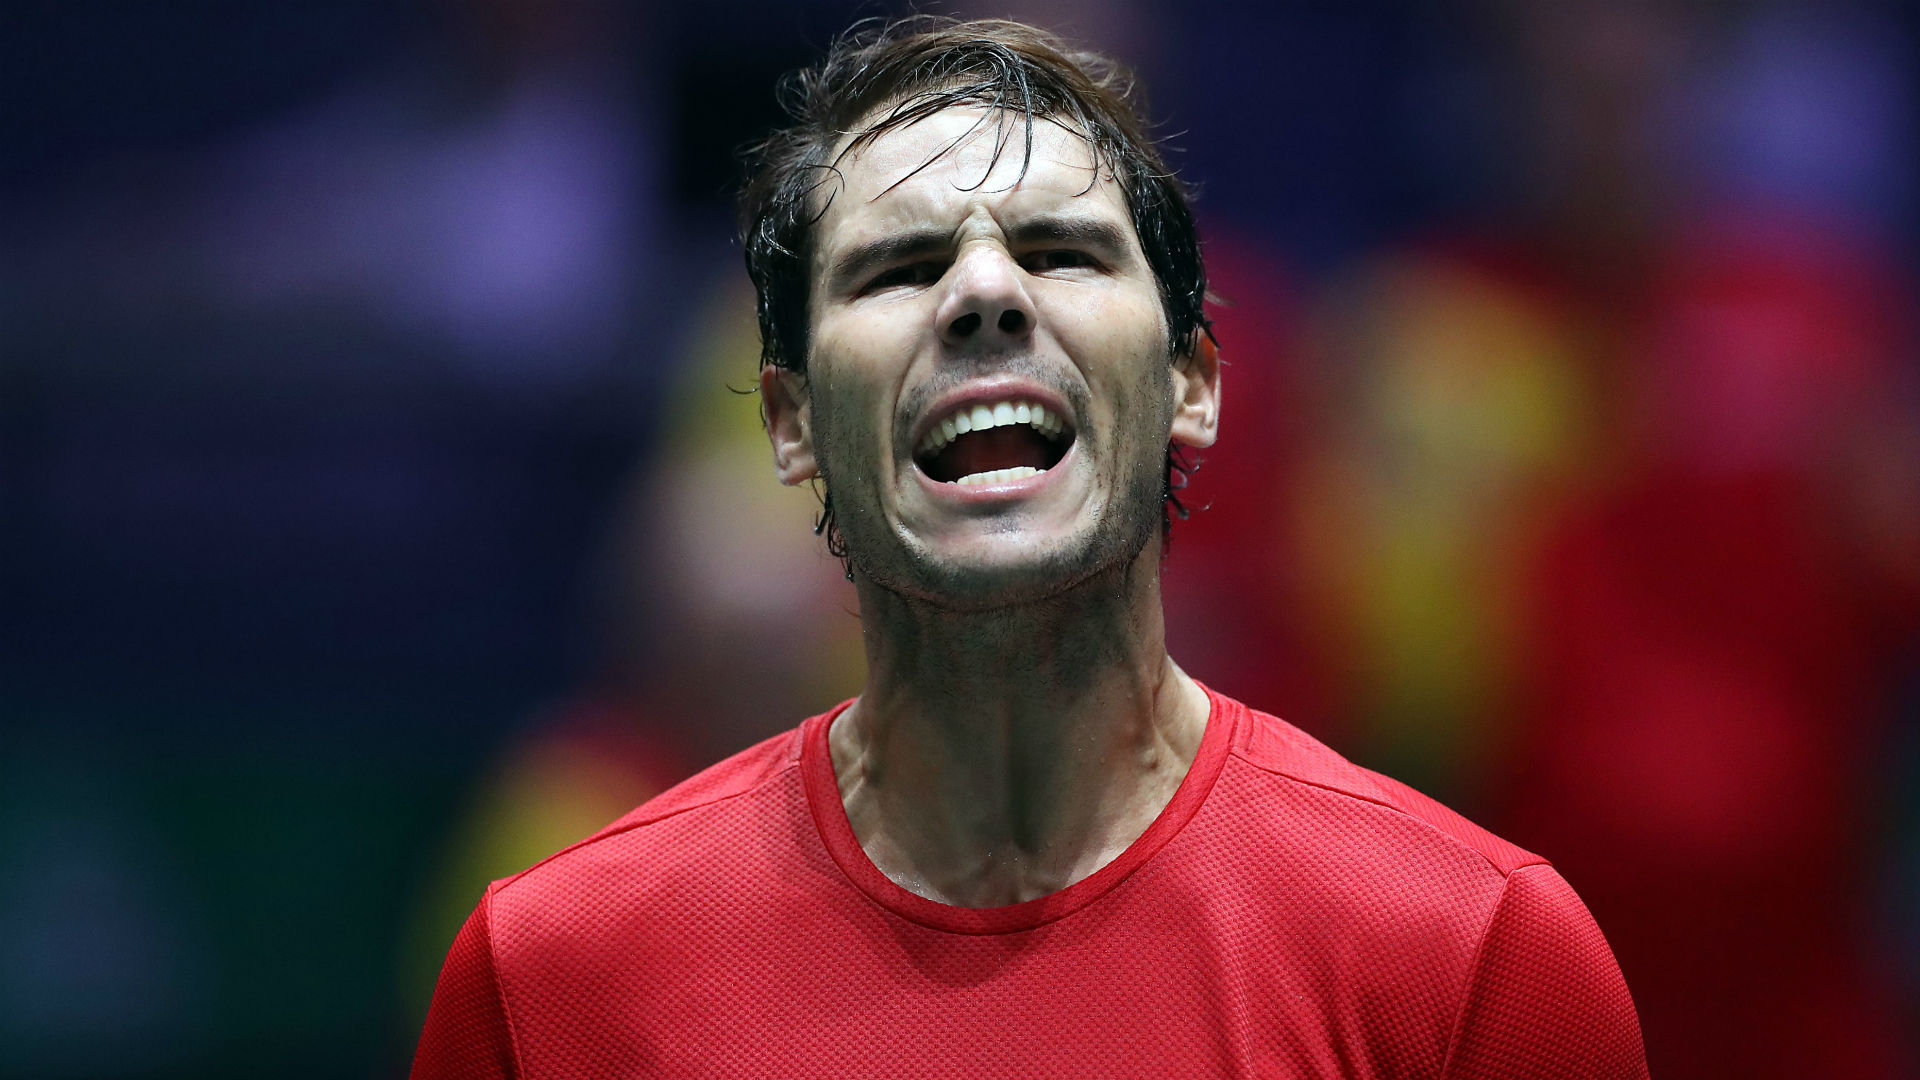 Rafael Nadal helped hosts Spain see off Argentina in a deciding doubles contest, setting up a semi-final against Great Britain.